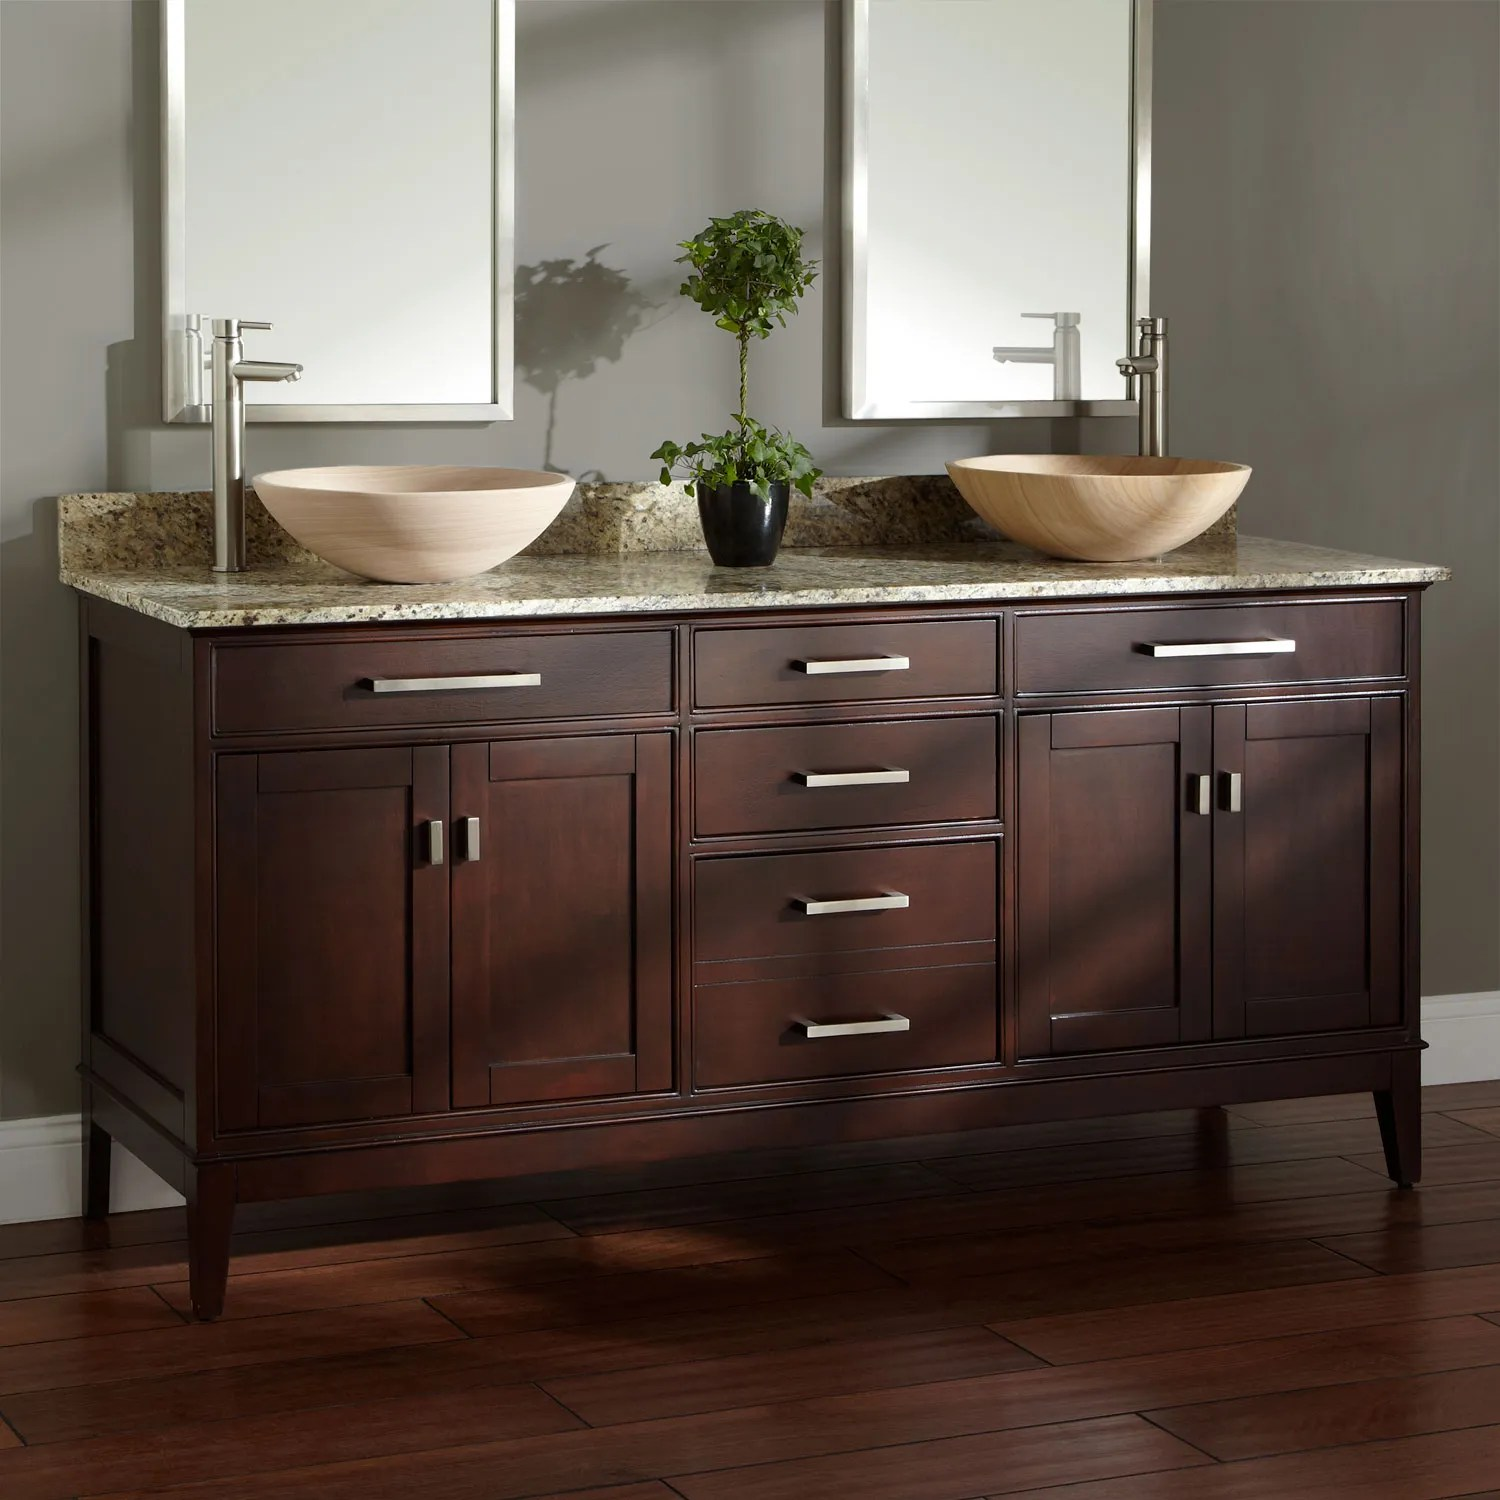 36 Orzoco Vessel Sink Vanity  Bathroom